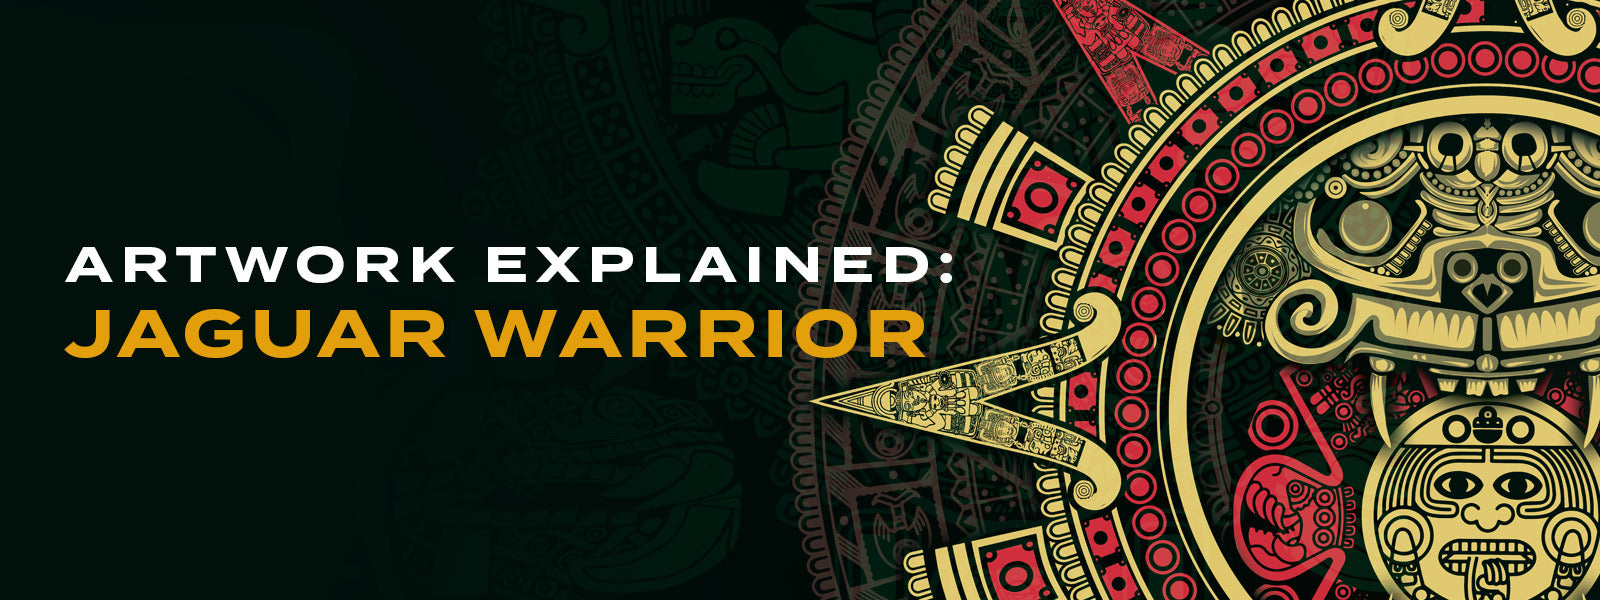 Artwork Explained: Jaguar Warrior